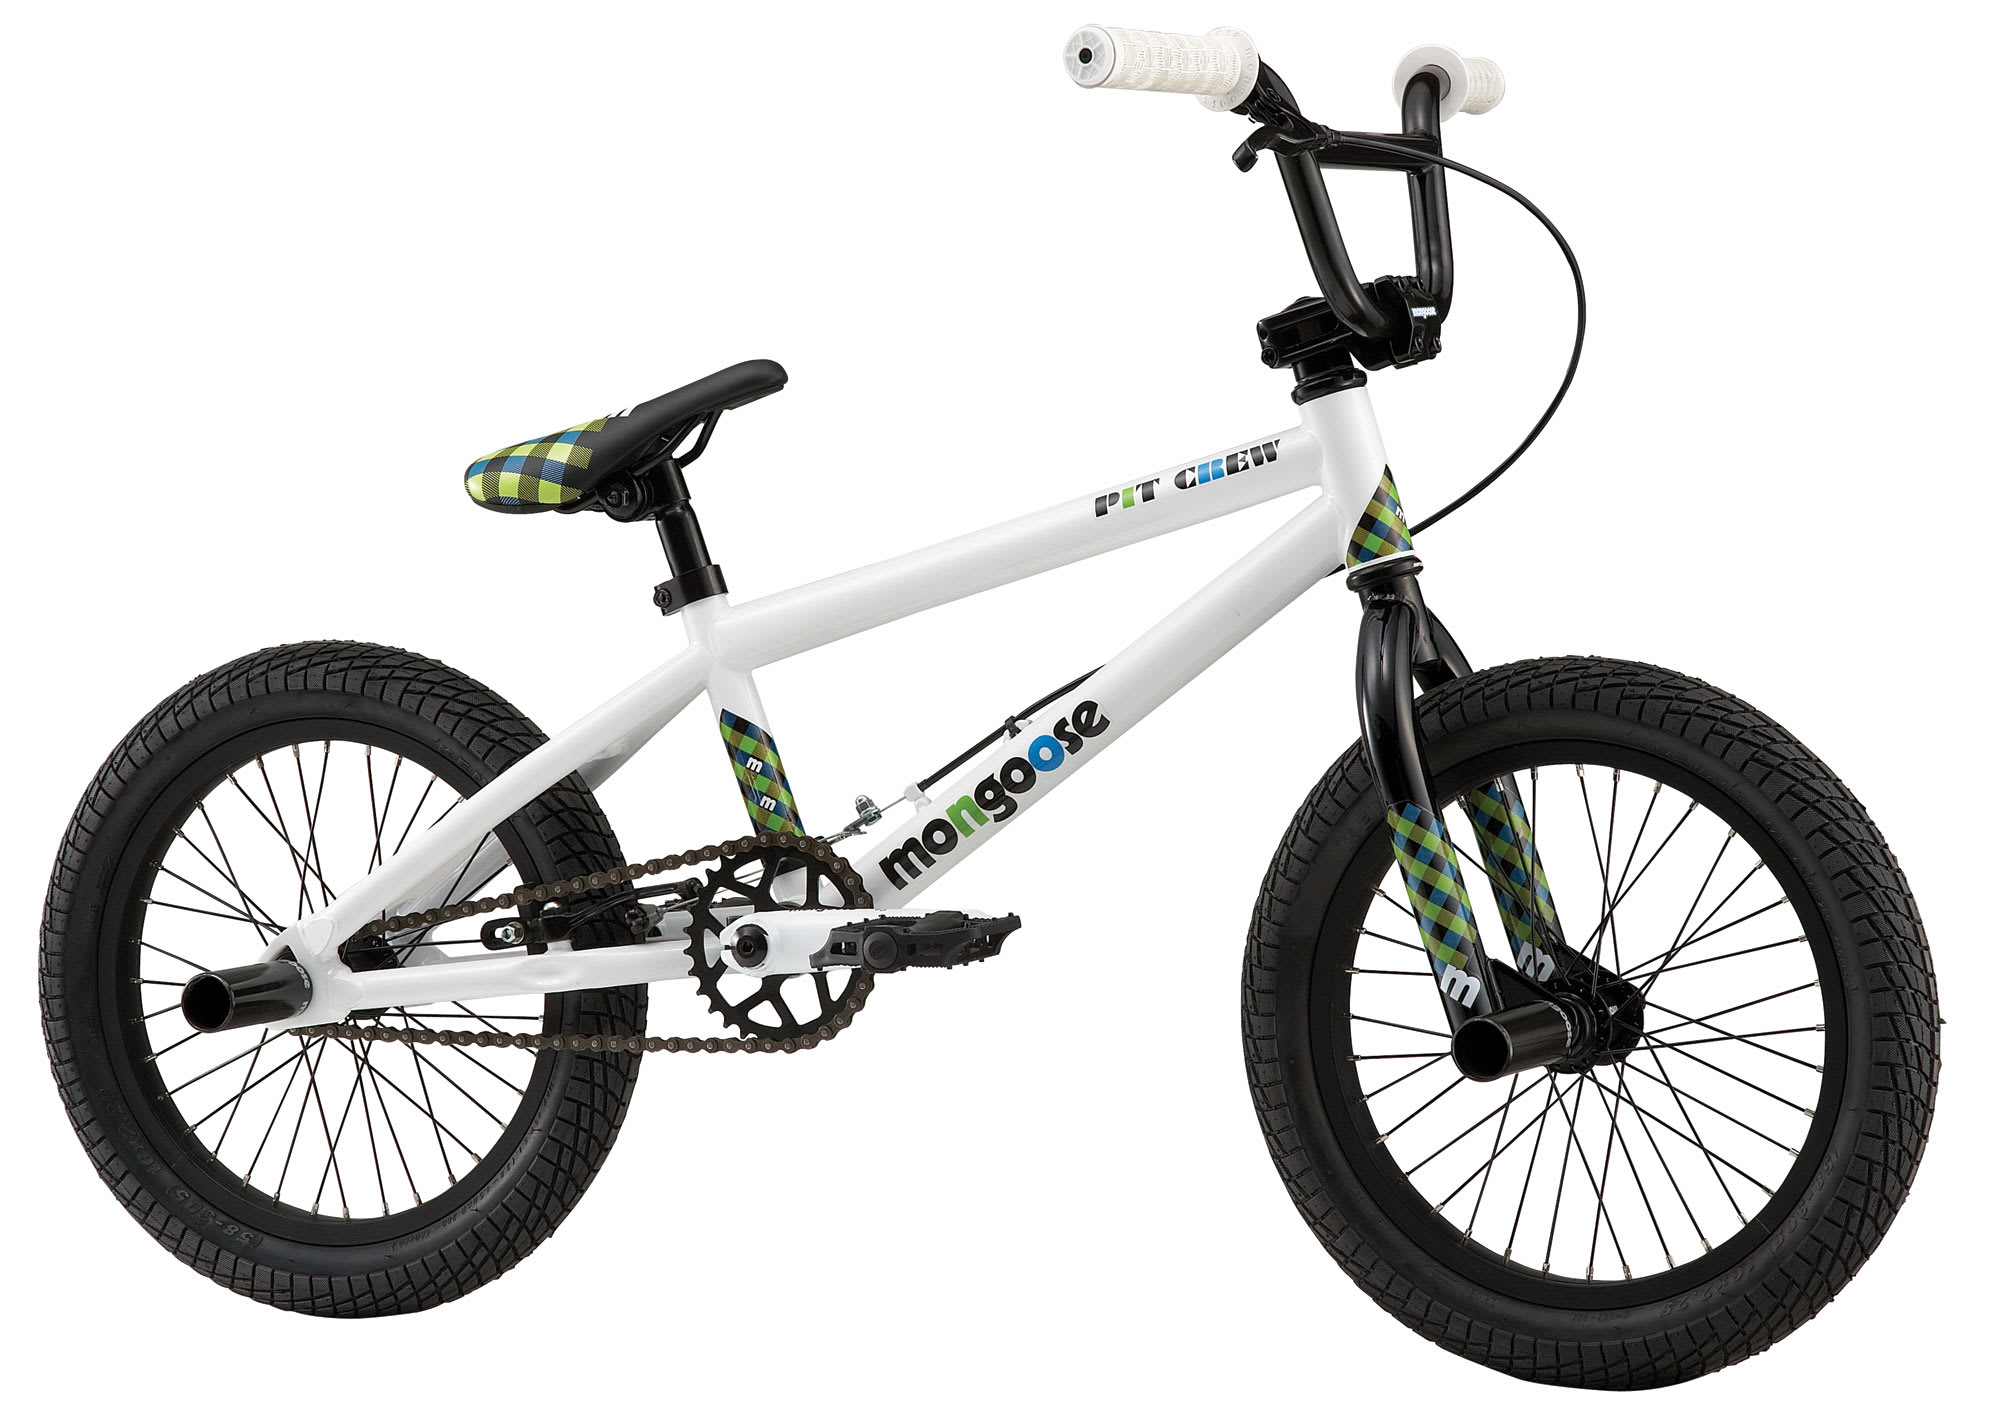 Bikes For Sale At Walmart Bikes And Sears BMX Bikes